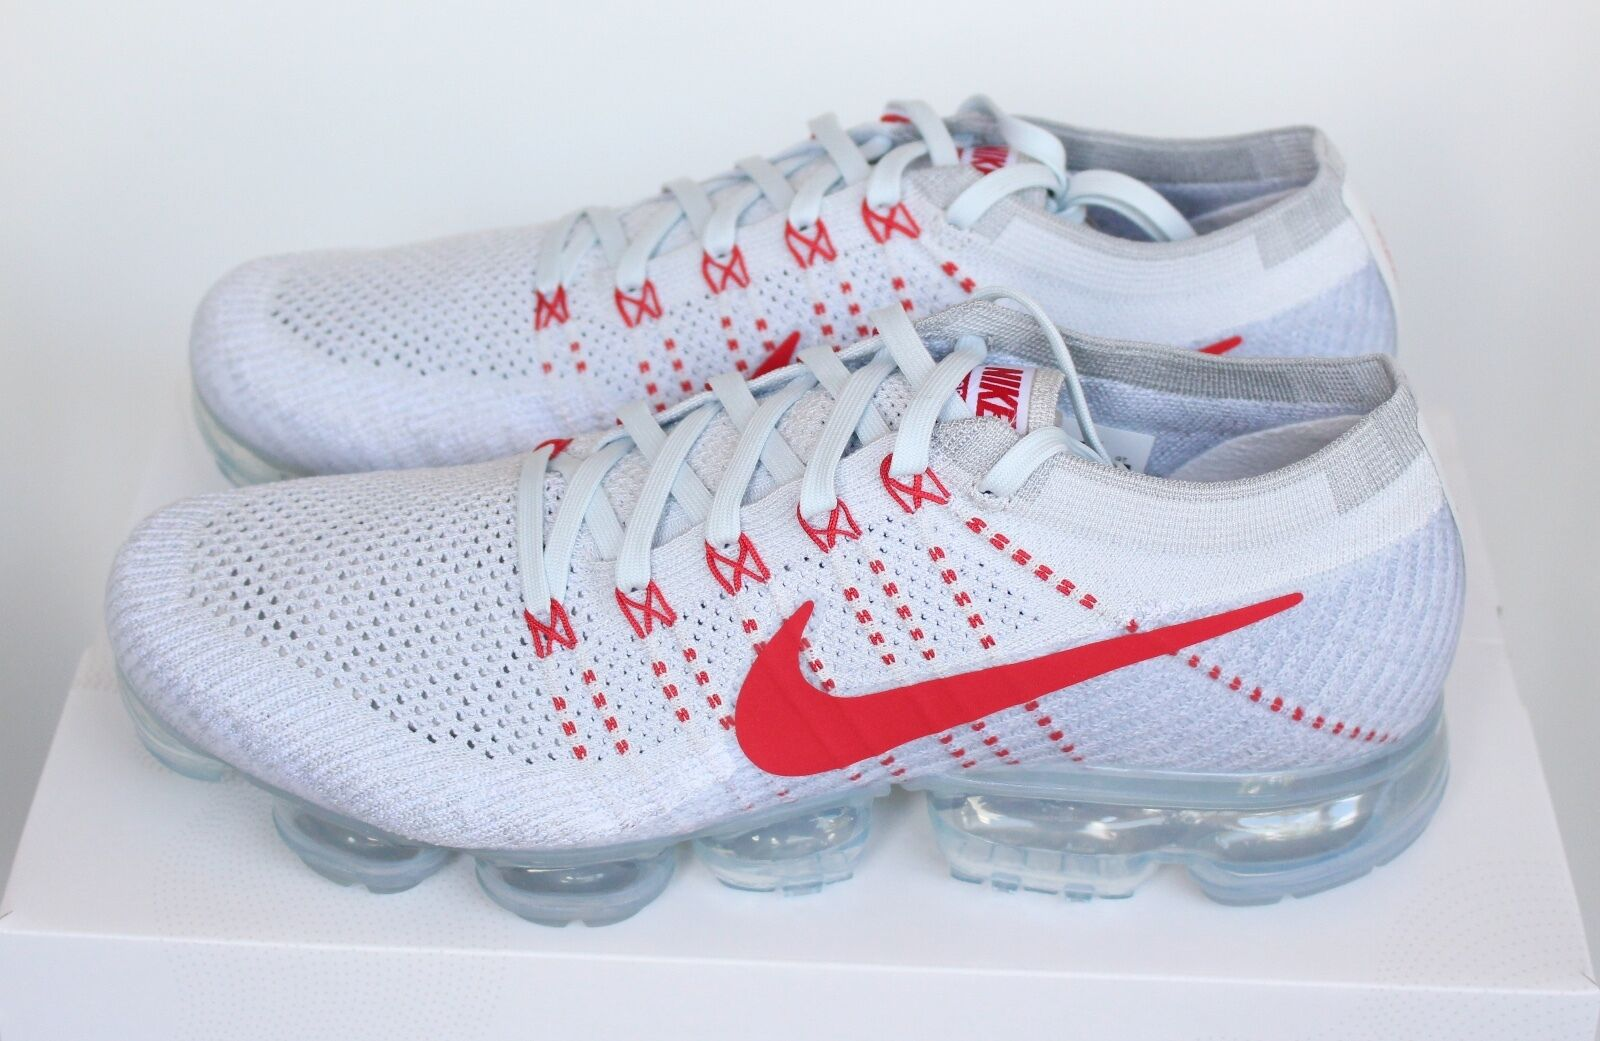 Nike Air Vapormax Flyknit OG Pure Platinum White Red 849558-006 5 10 11 New